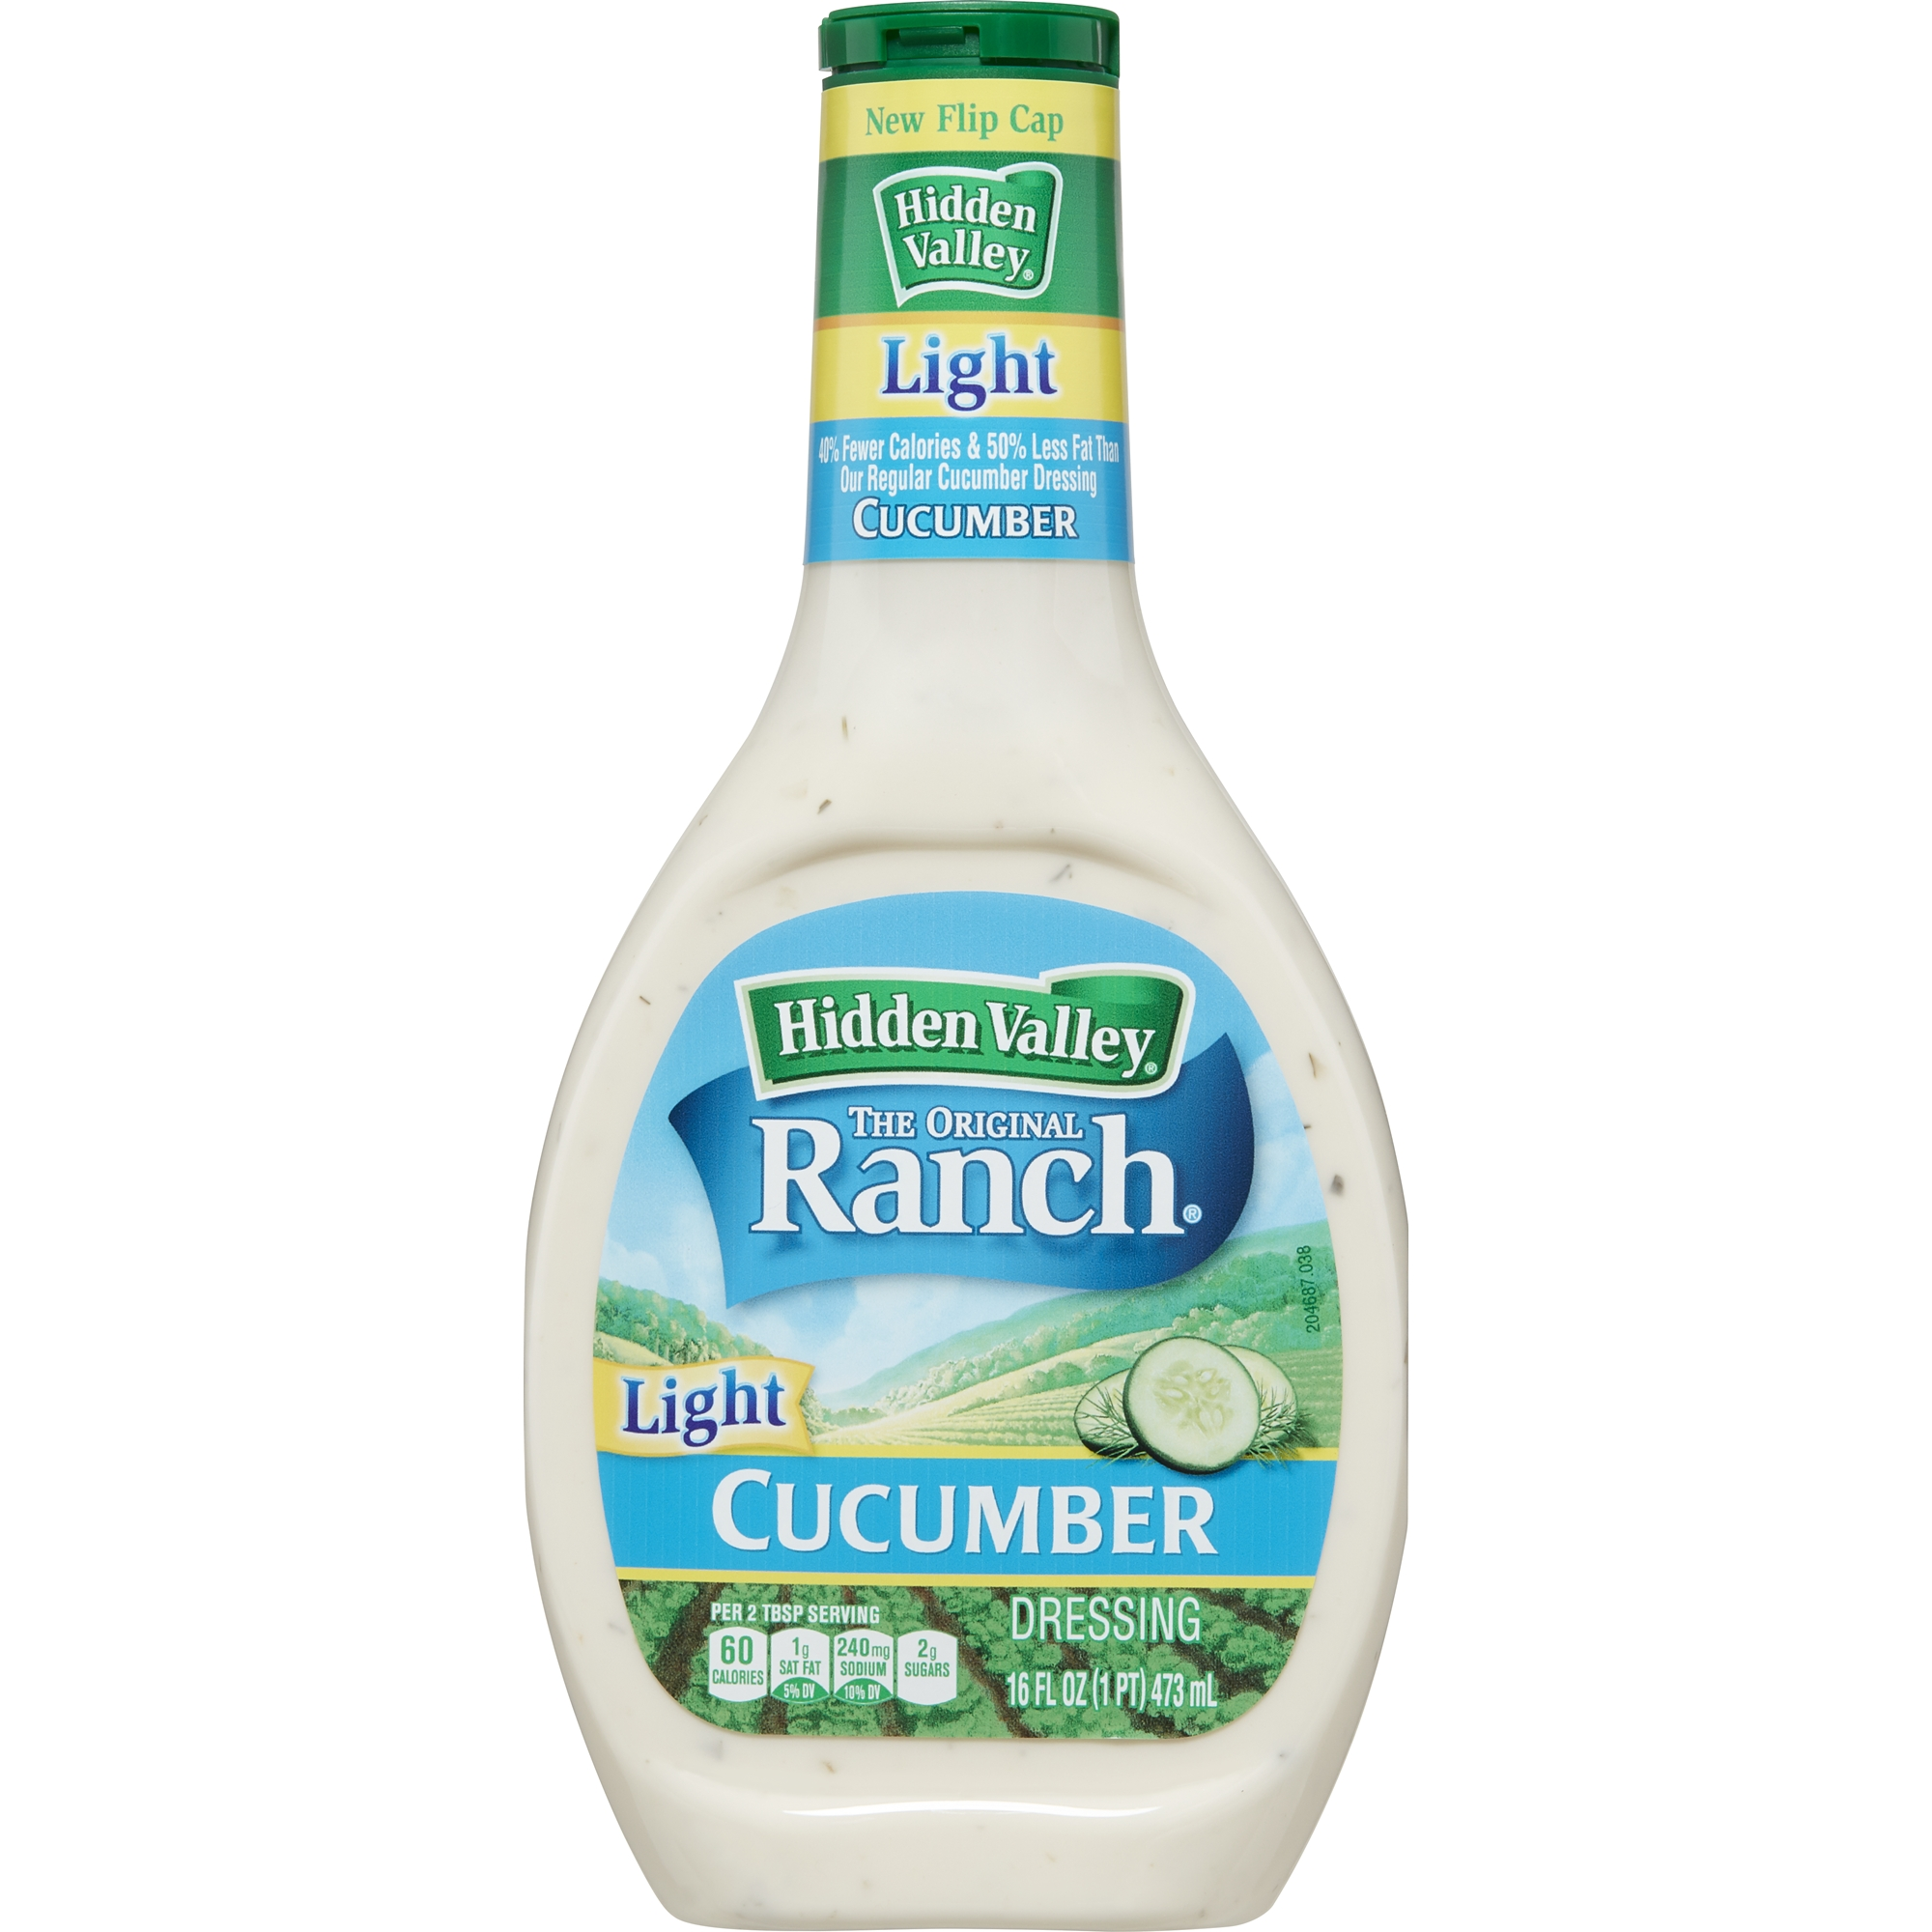 Hidden Valley Cucumber Ranch Light Salad Dressing & Topping, Gluten Free - 16 oz Bottle